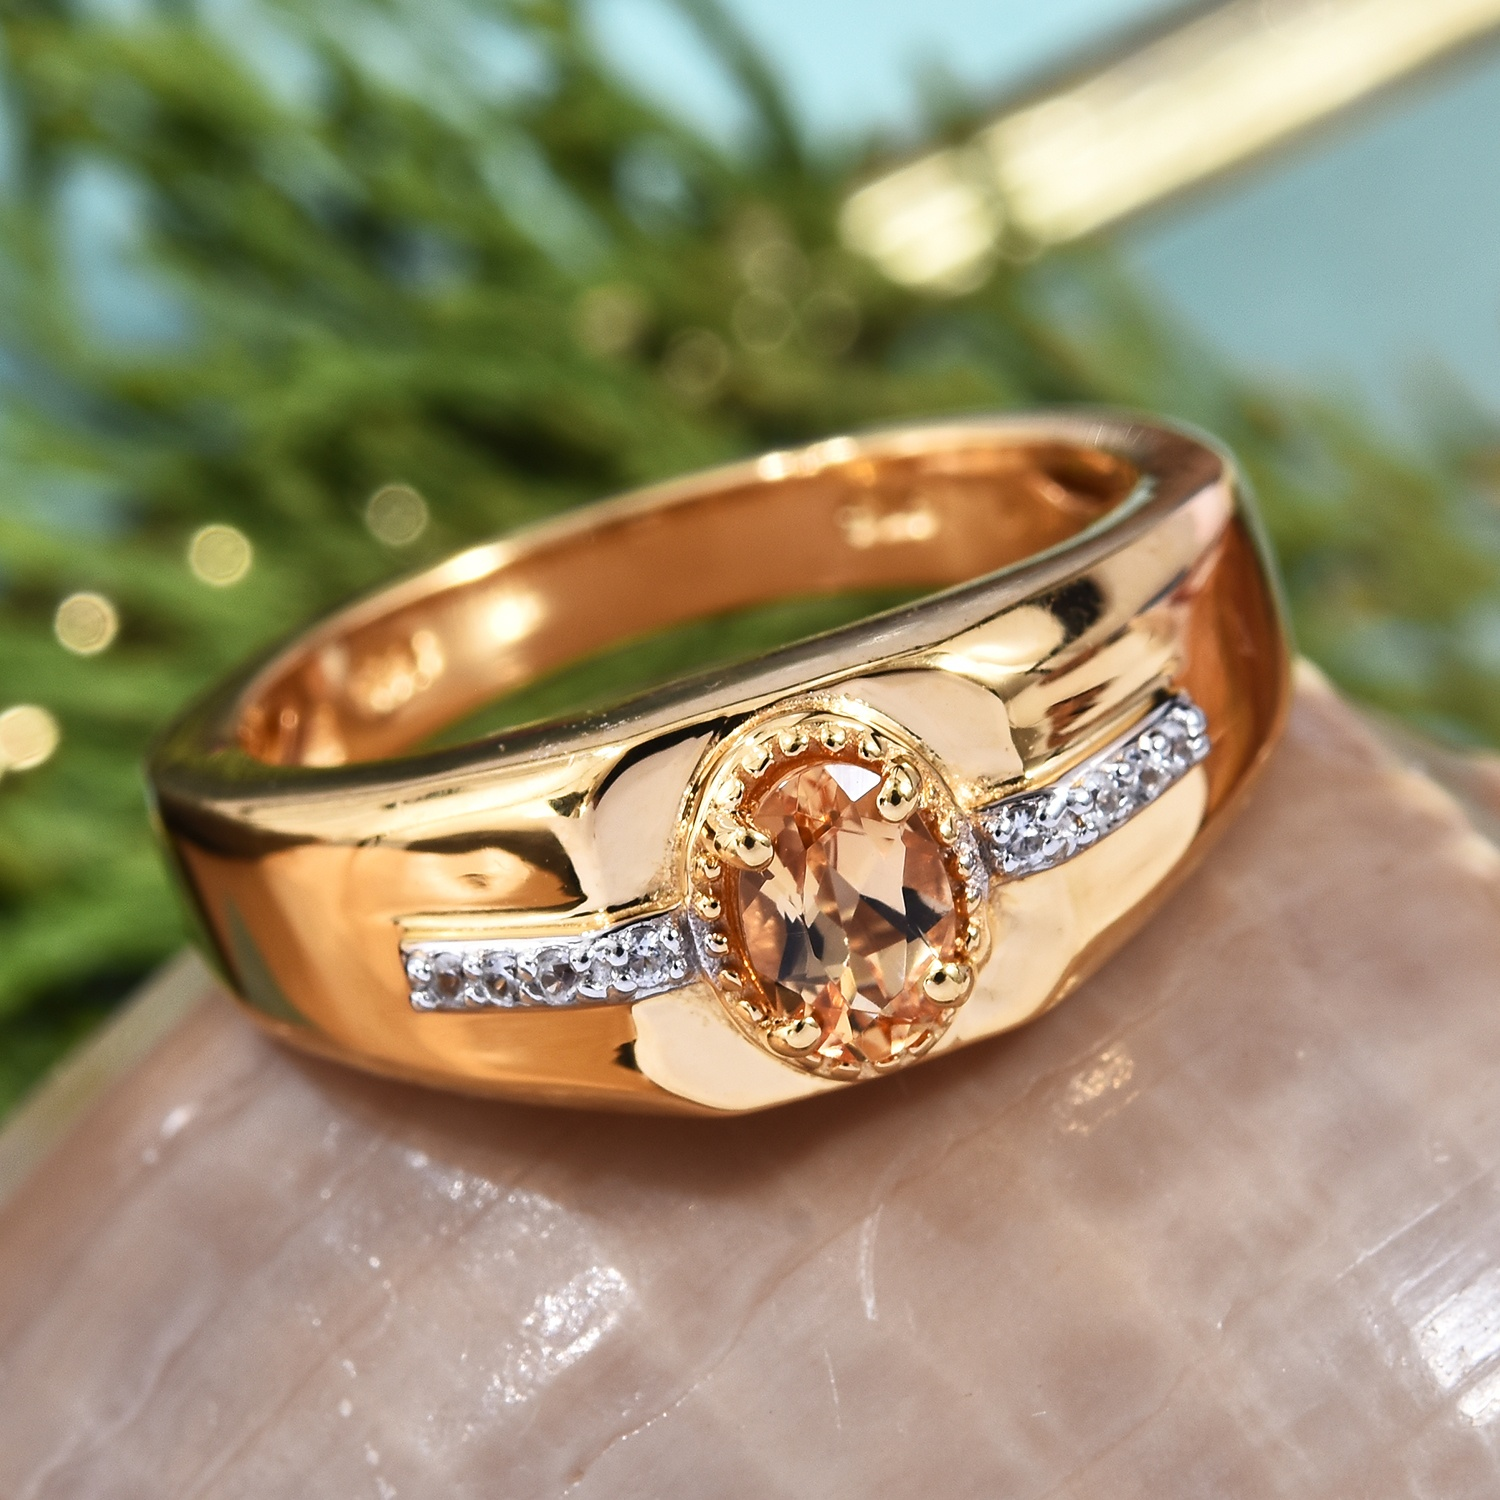 Gold men's ring featuring imperial topaz.